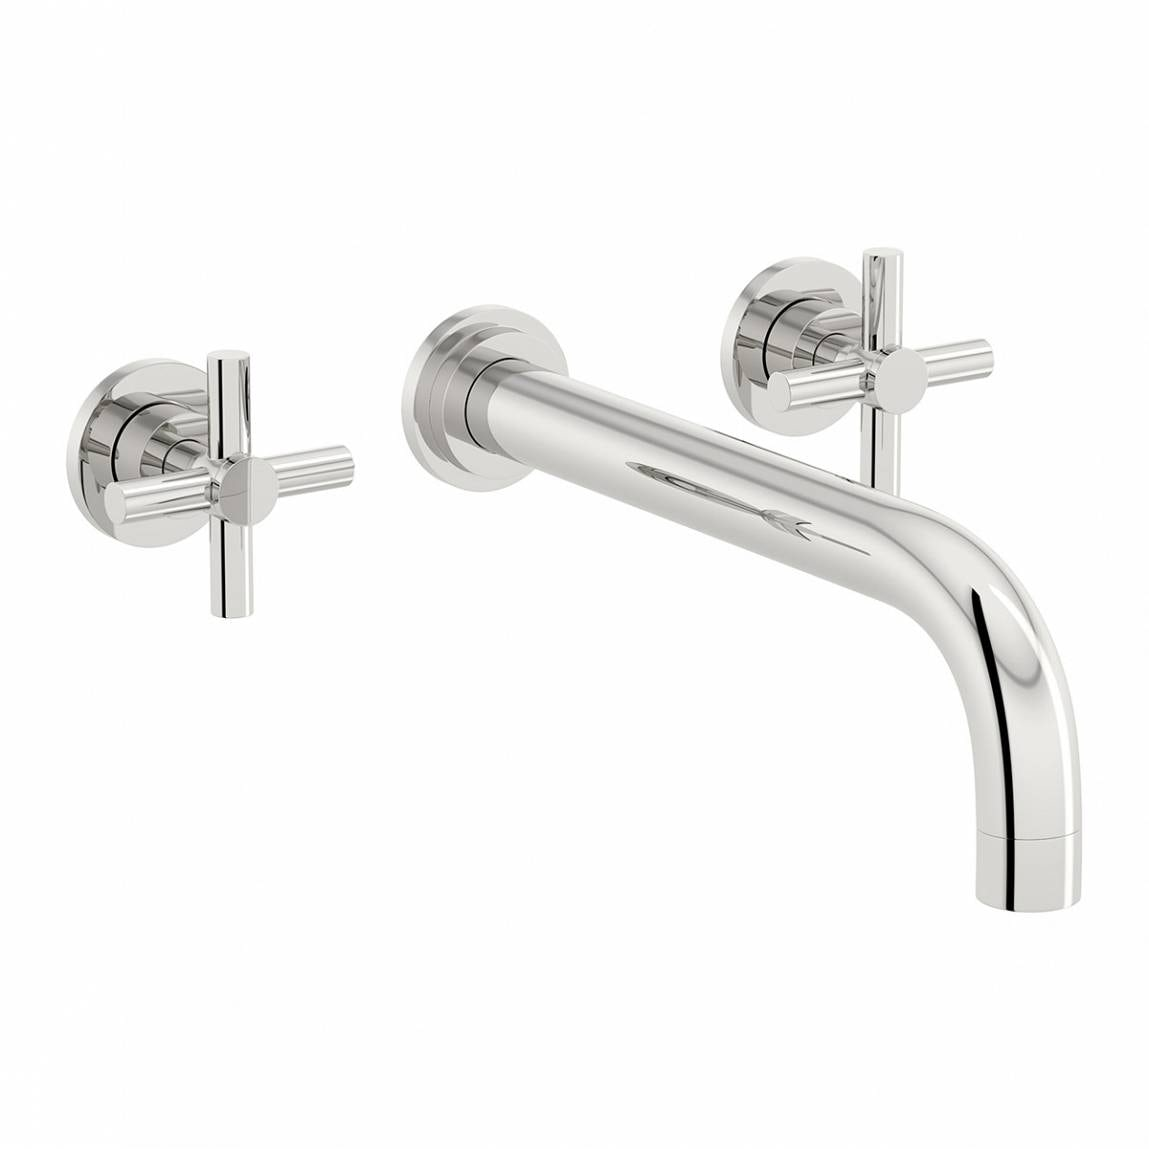 Mode Tate wall mounted bath filler tap